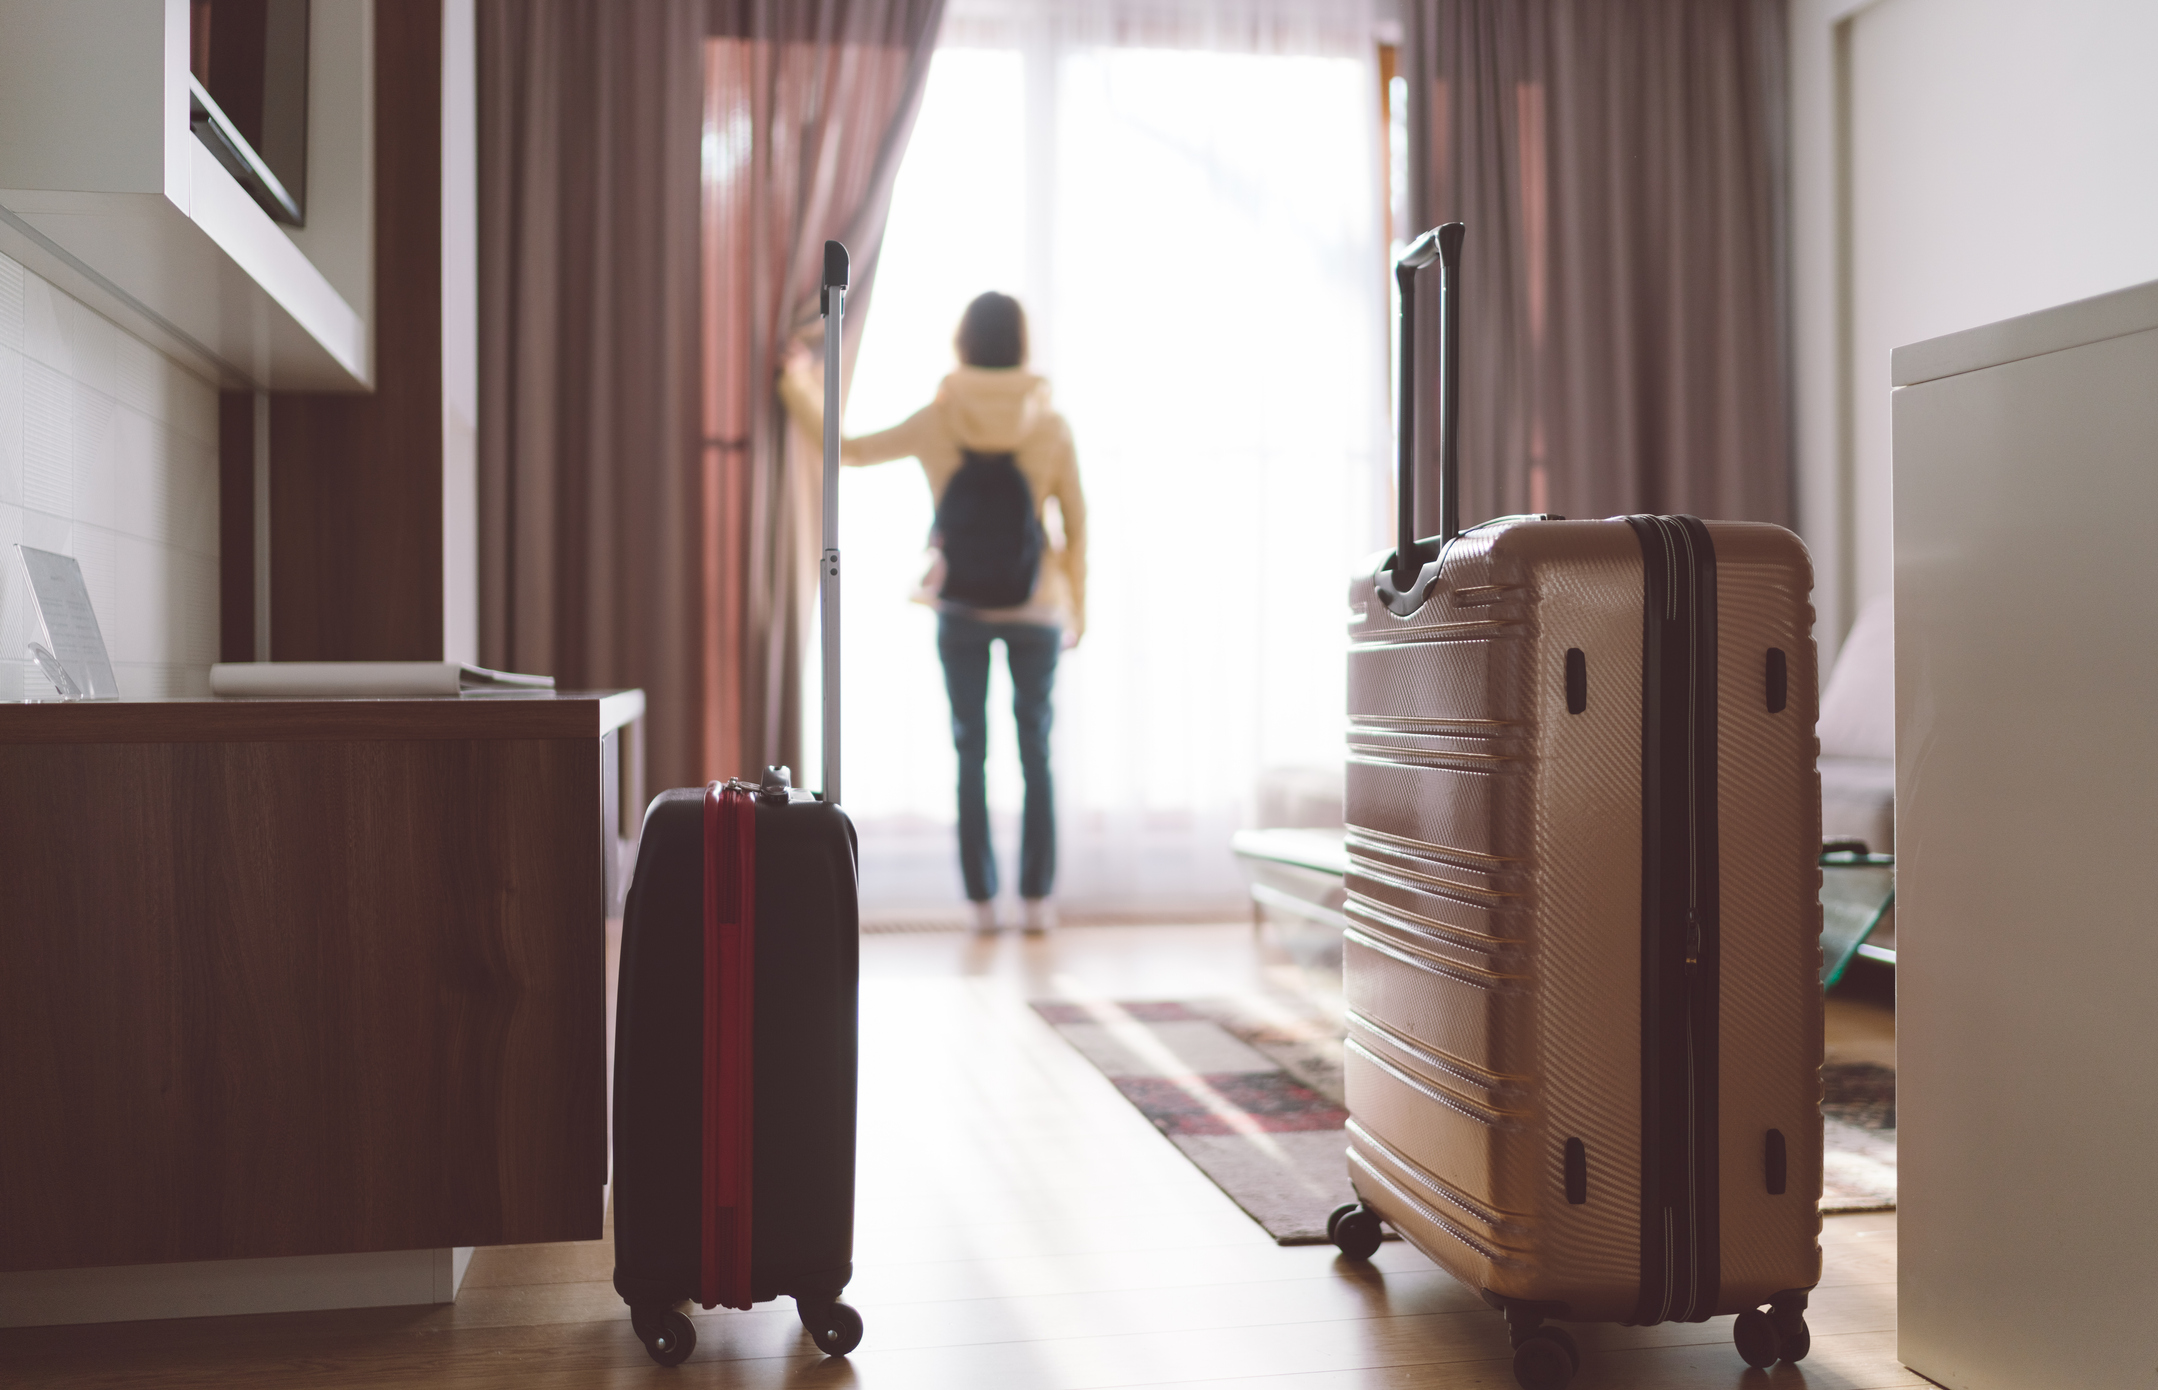 Will the lodging industry's supply growth outpace demand?